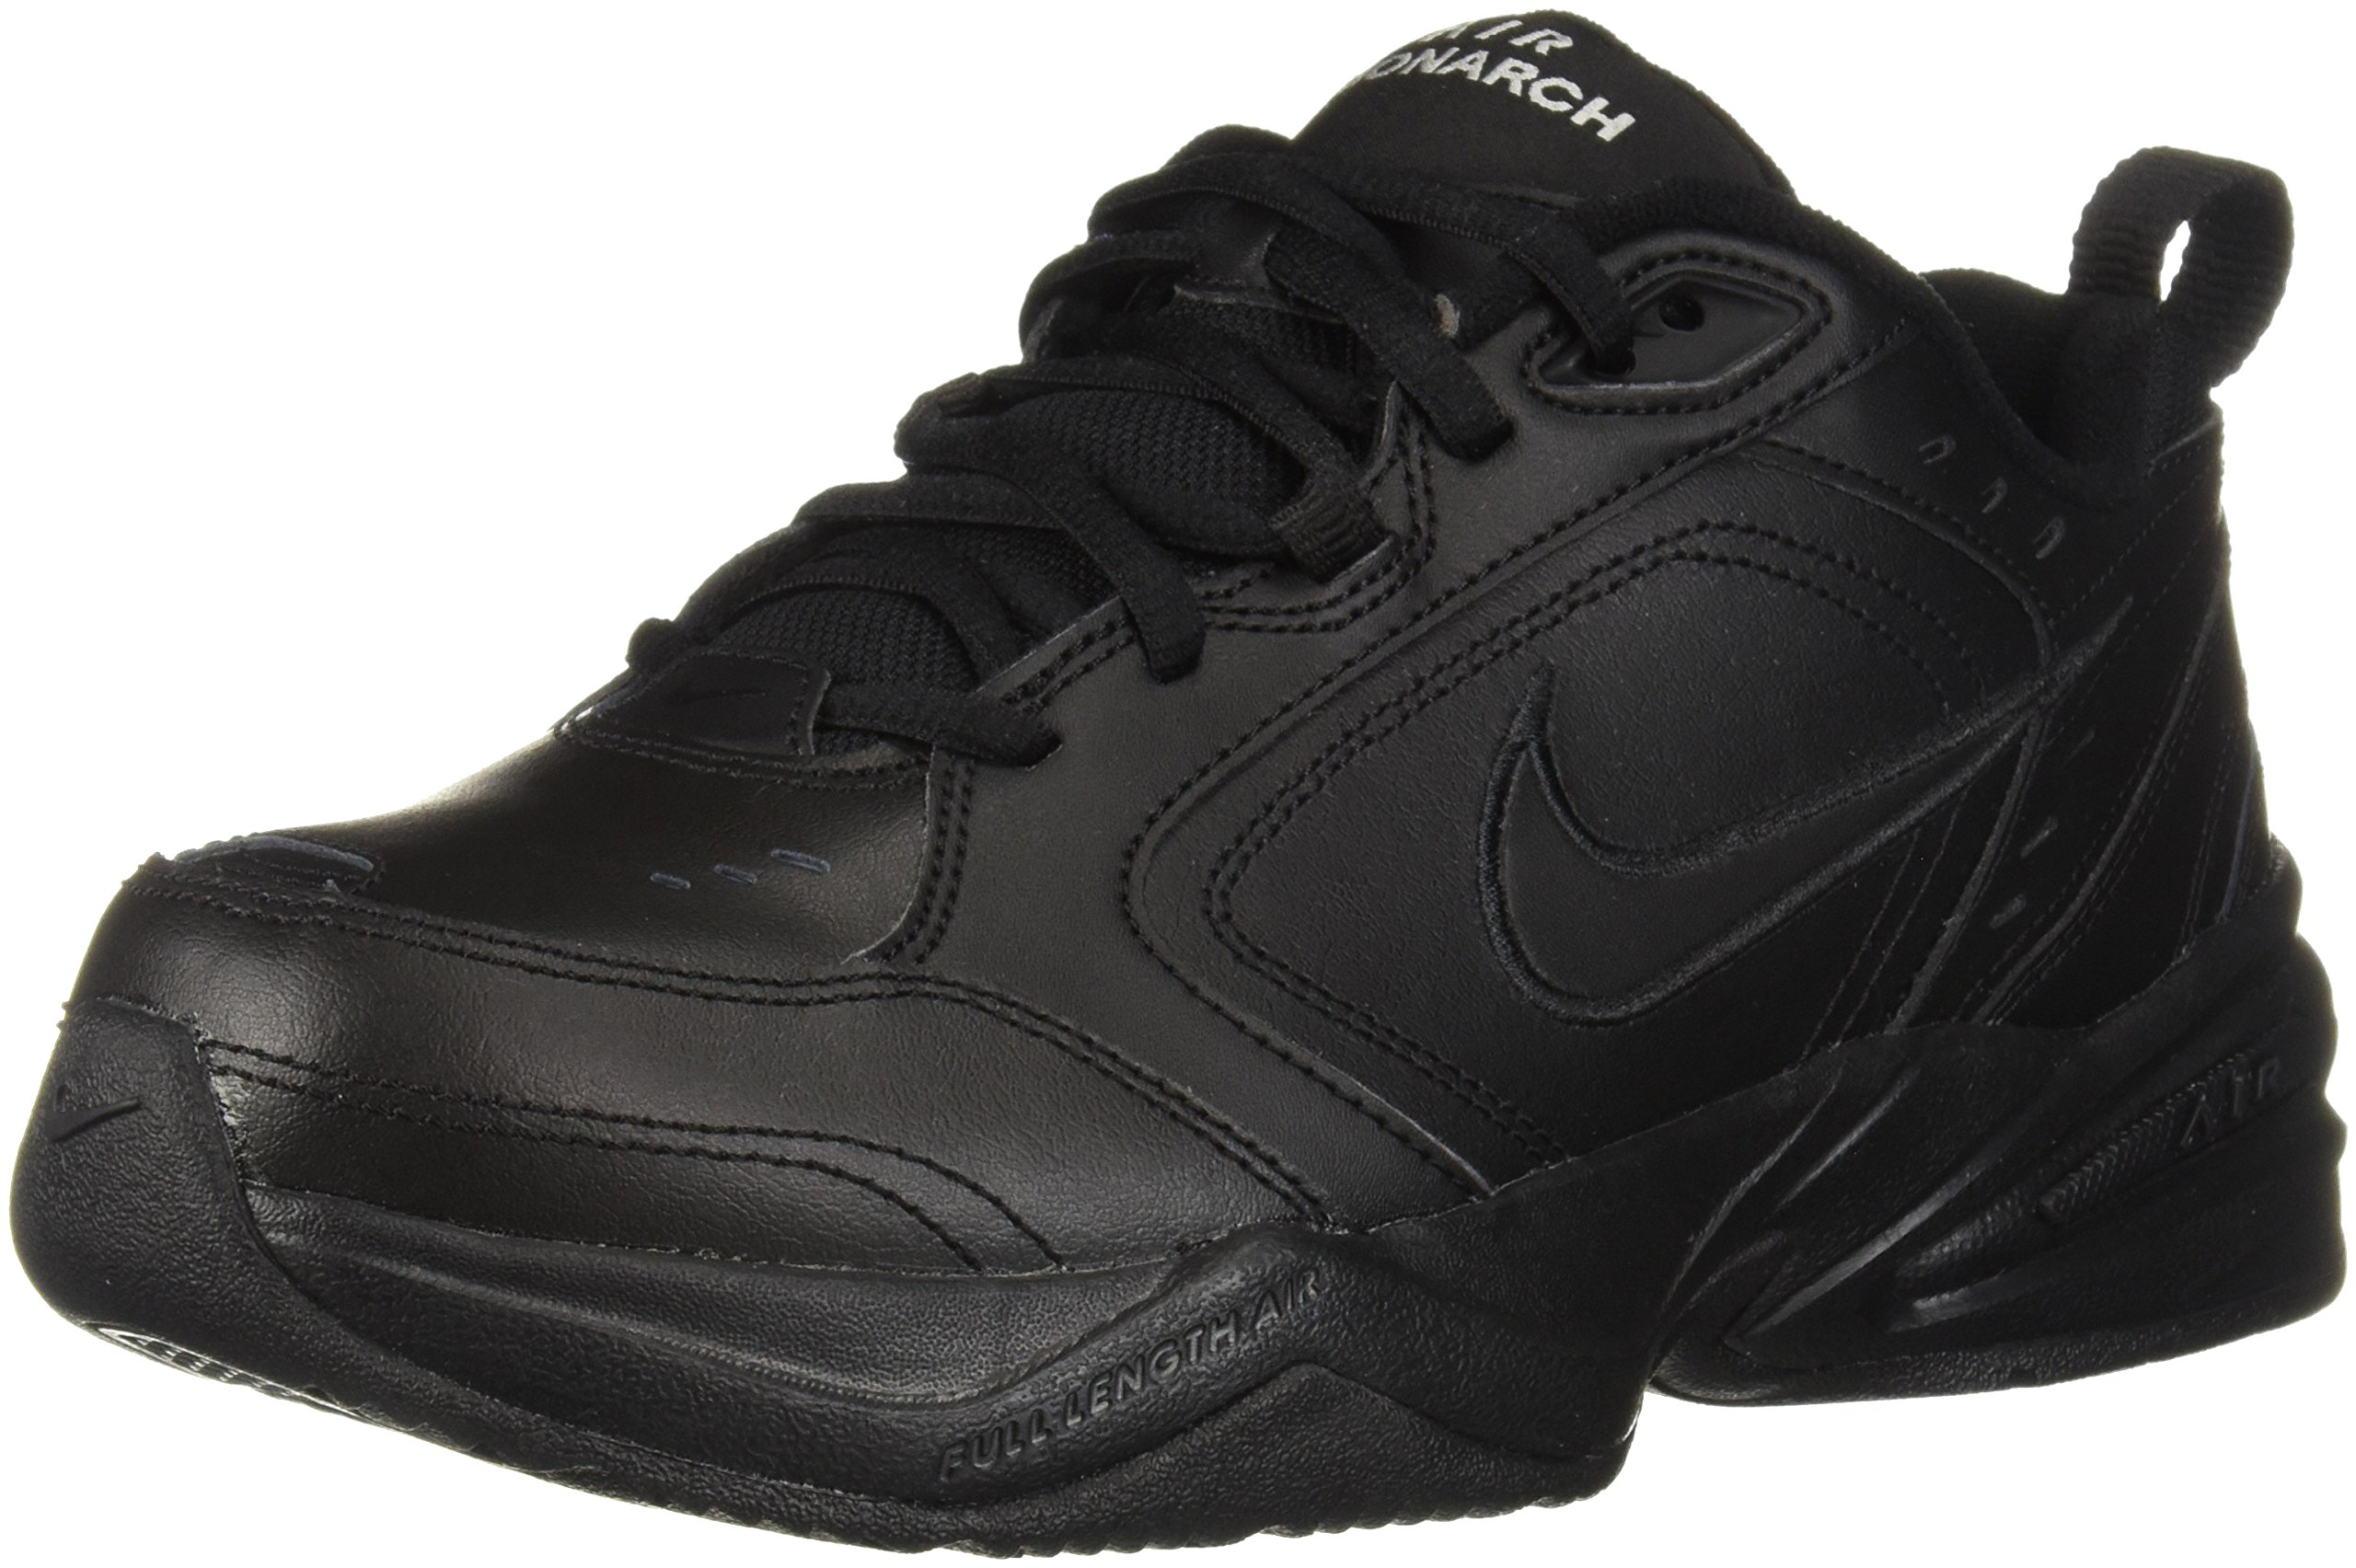 Nike Men's Air Monarch IV Cross Trainer, Black, 7.5 4E US by Nike (Image #1)